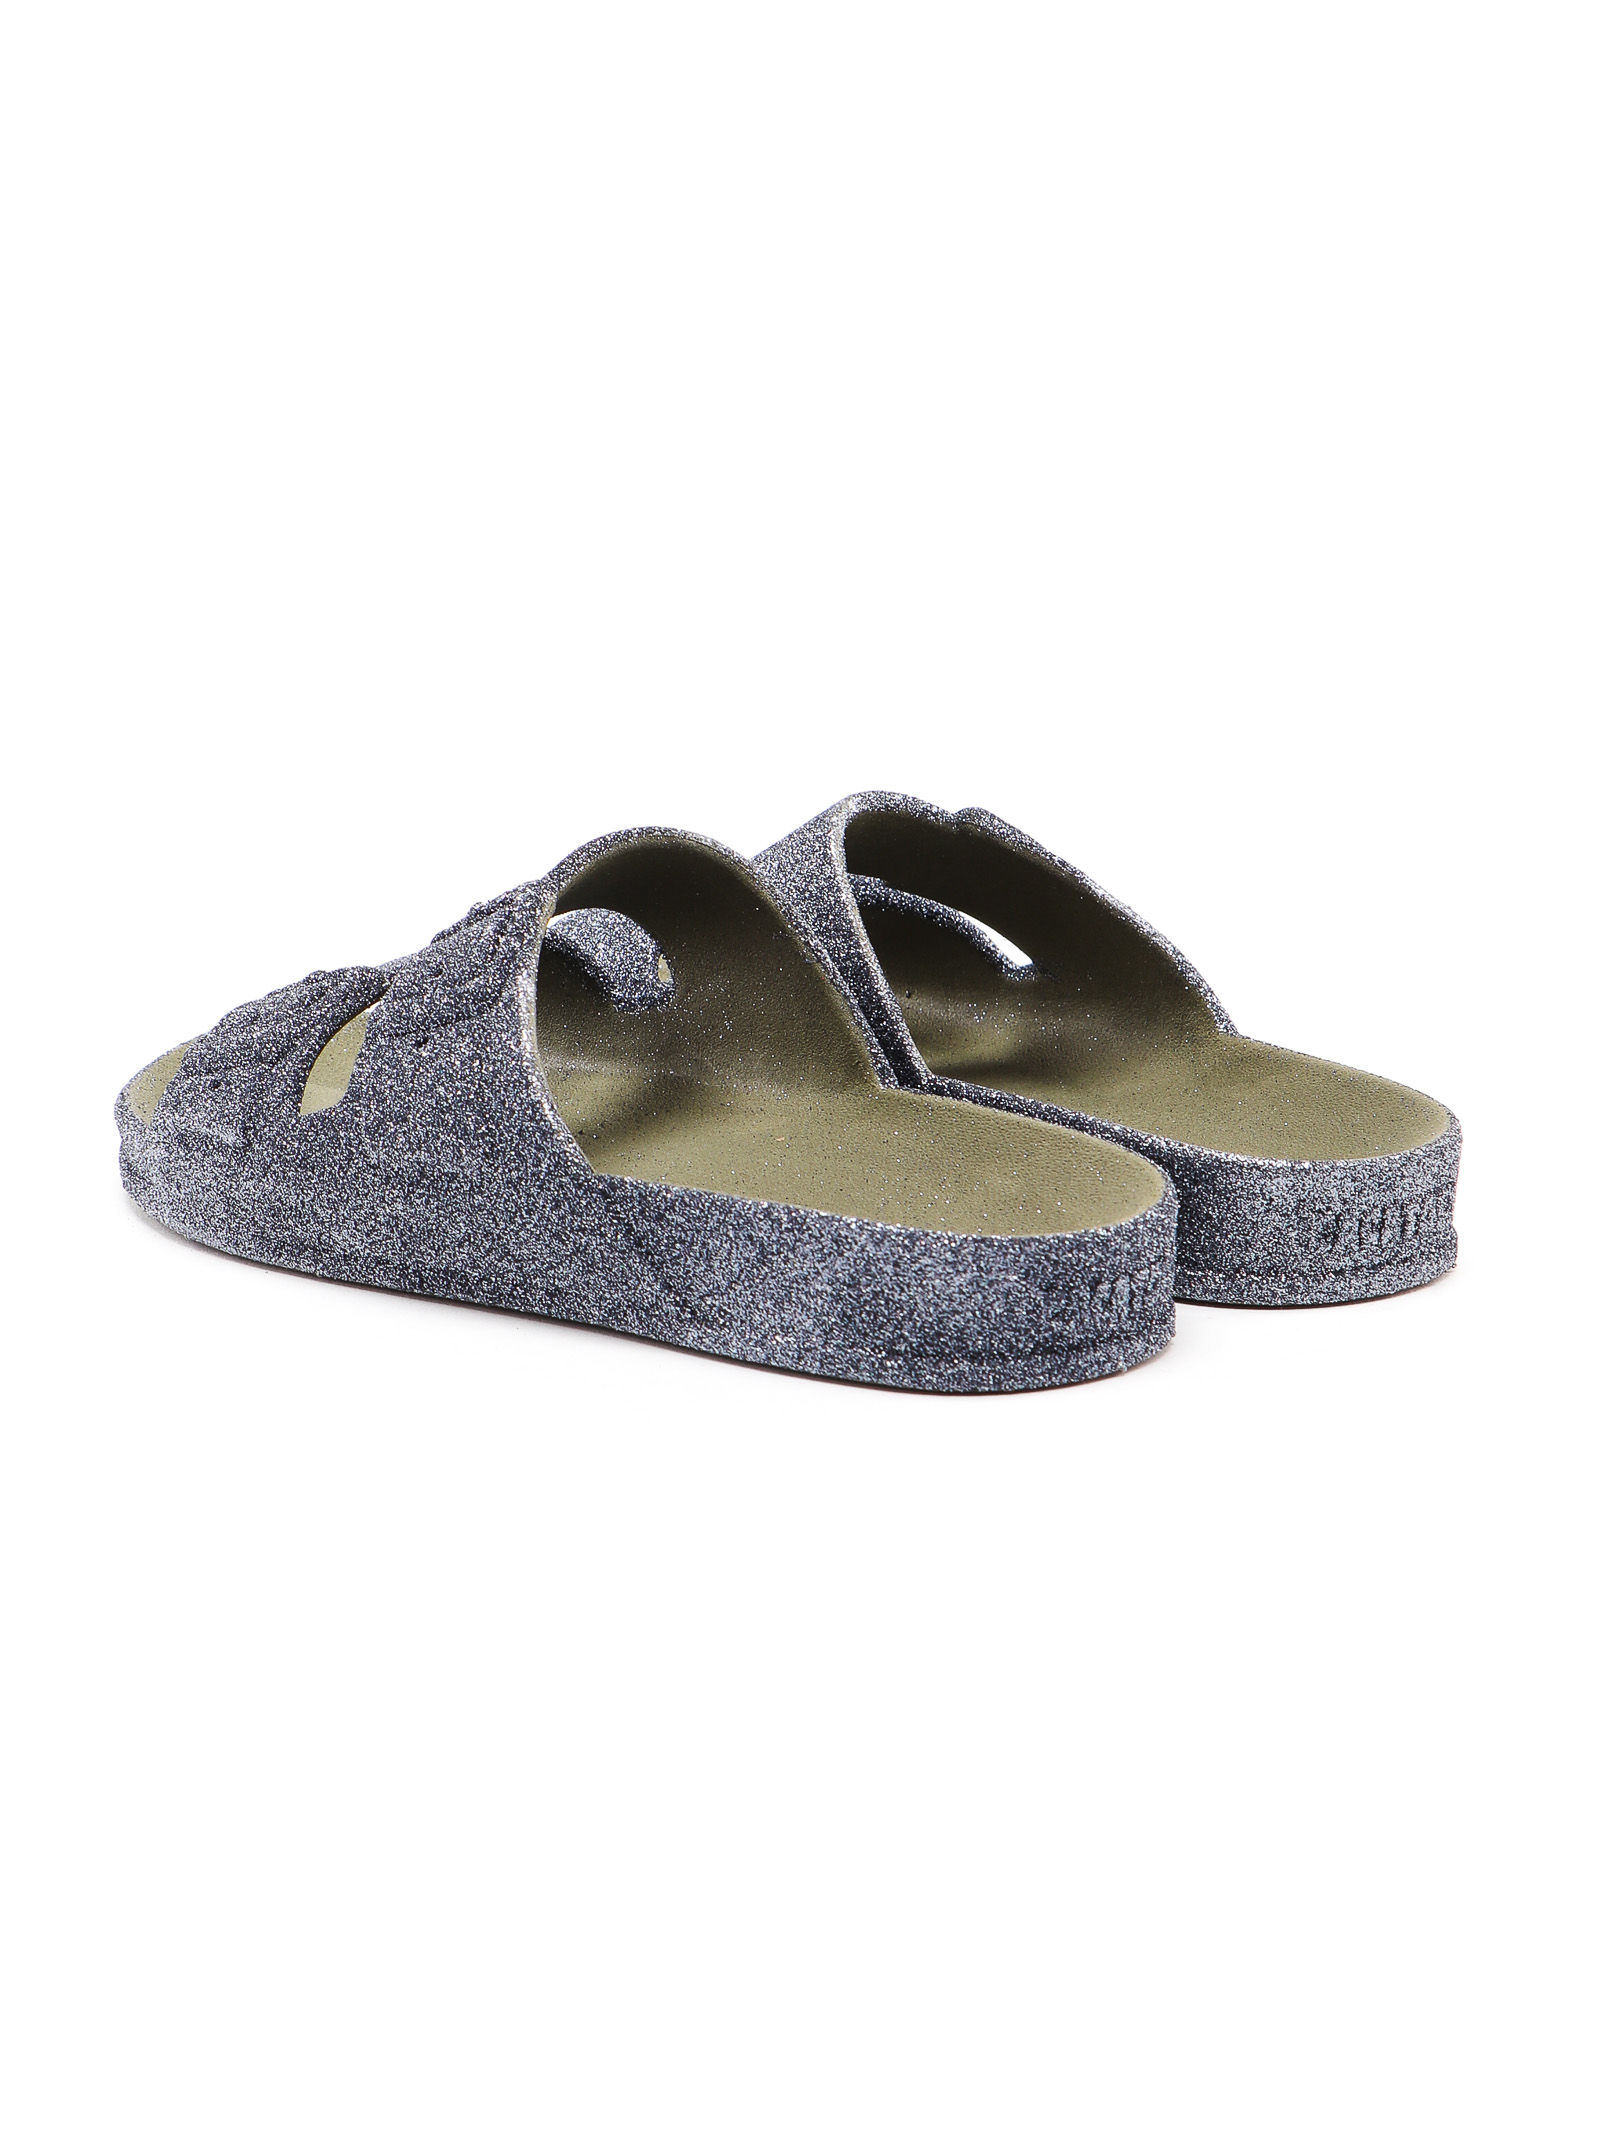 Picture of Cacatoes Do Brasil | Sandals Pvc